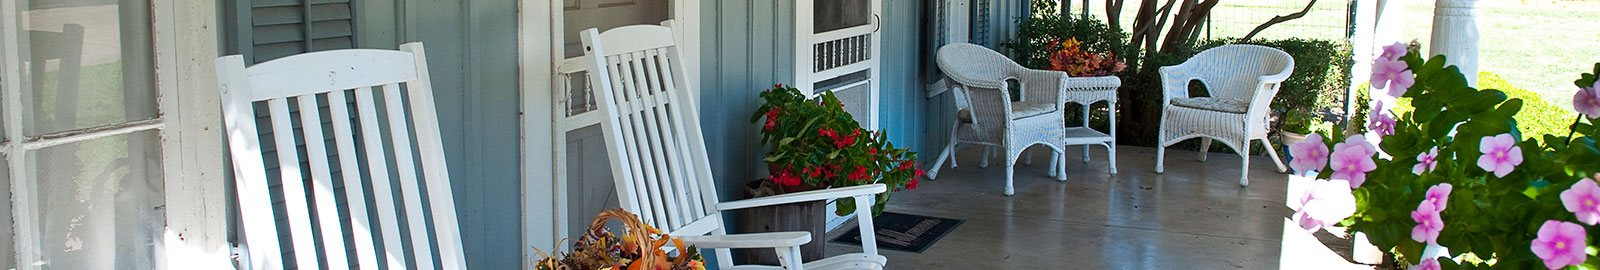 Porch on a Vacation Rental